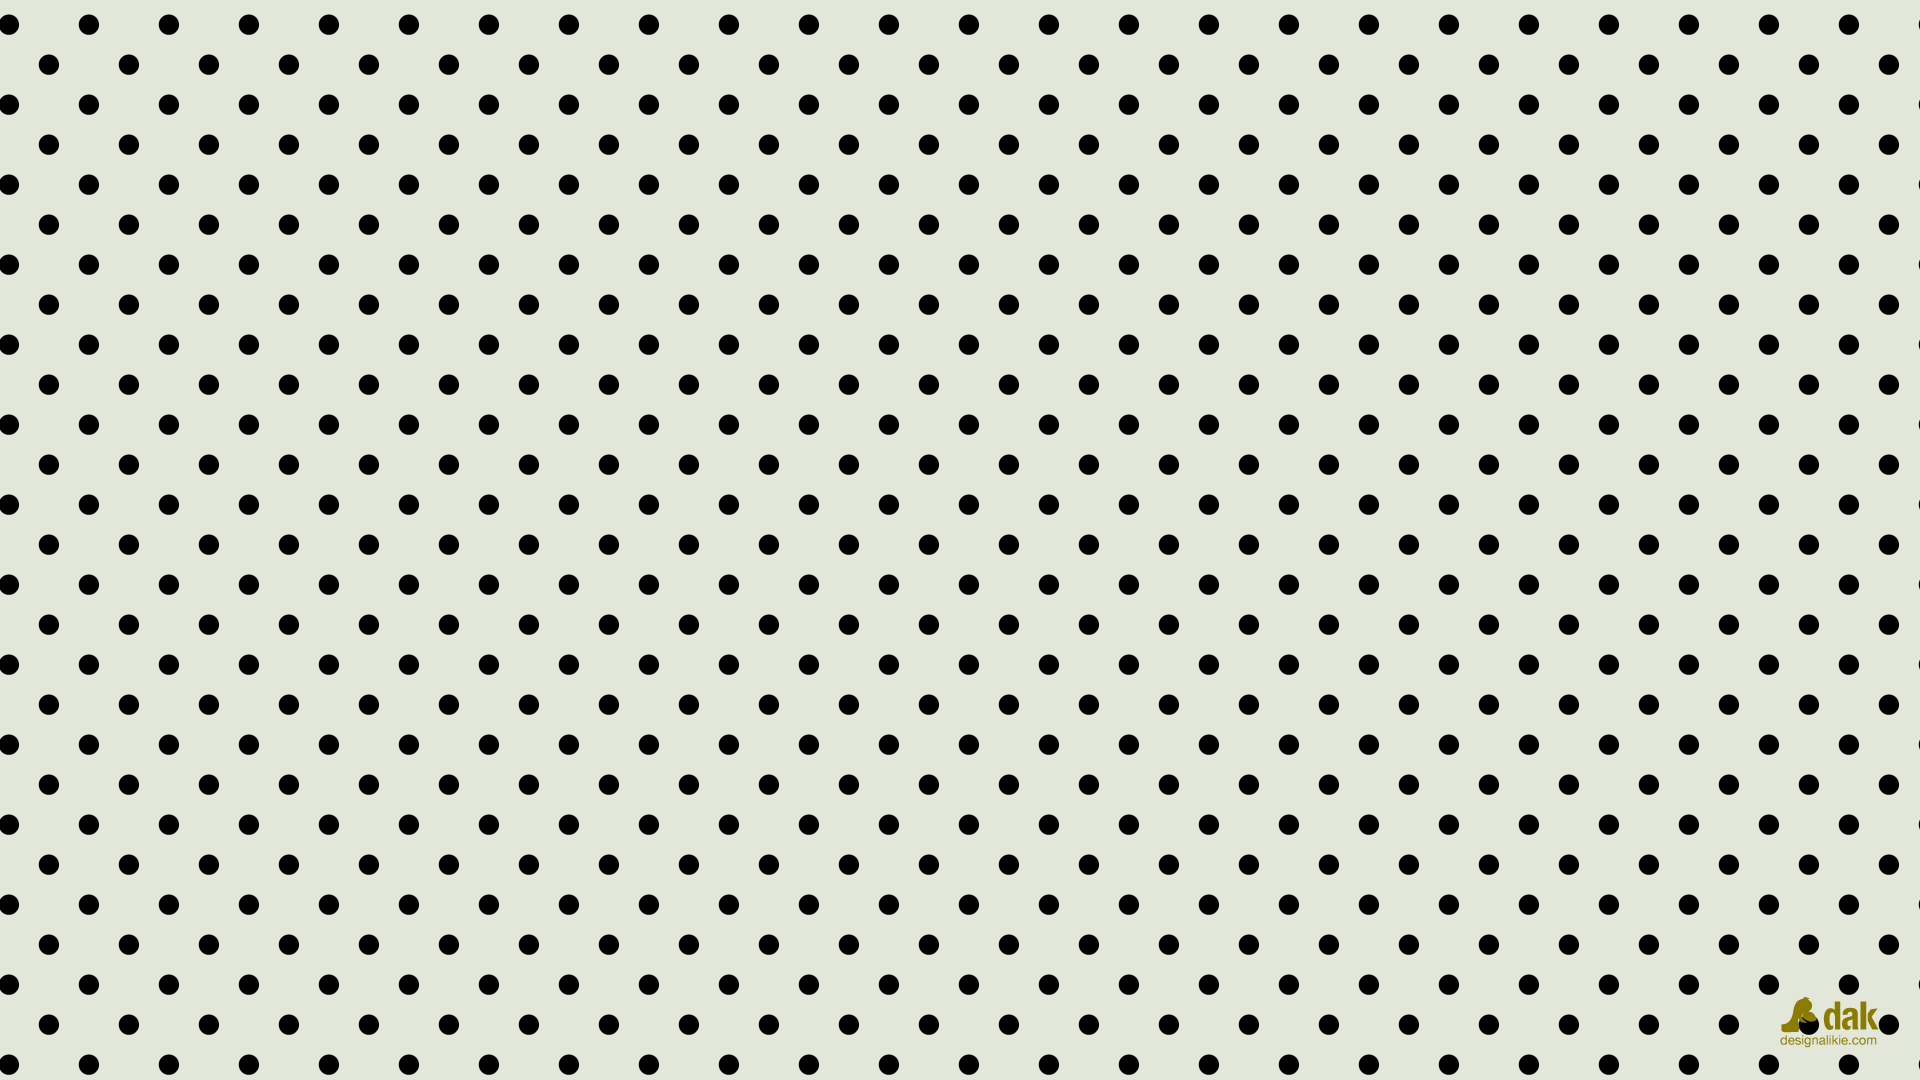 dotted texture wallpaper 1920x1080 - photo #22